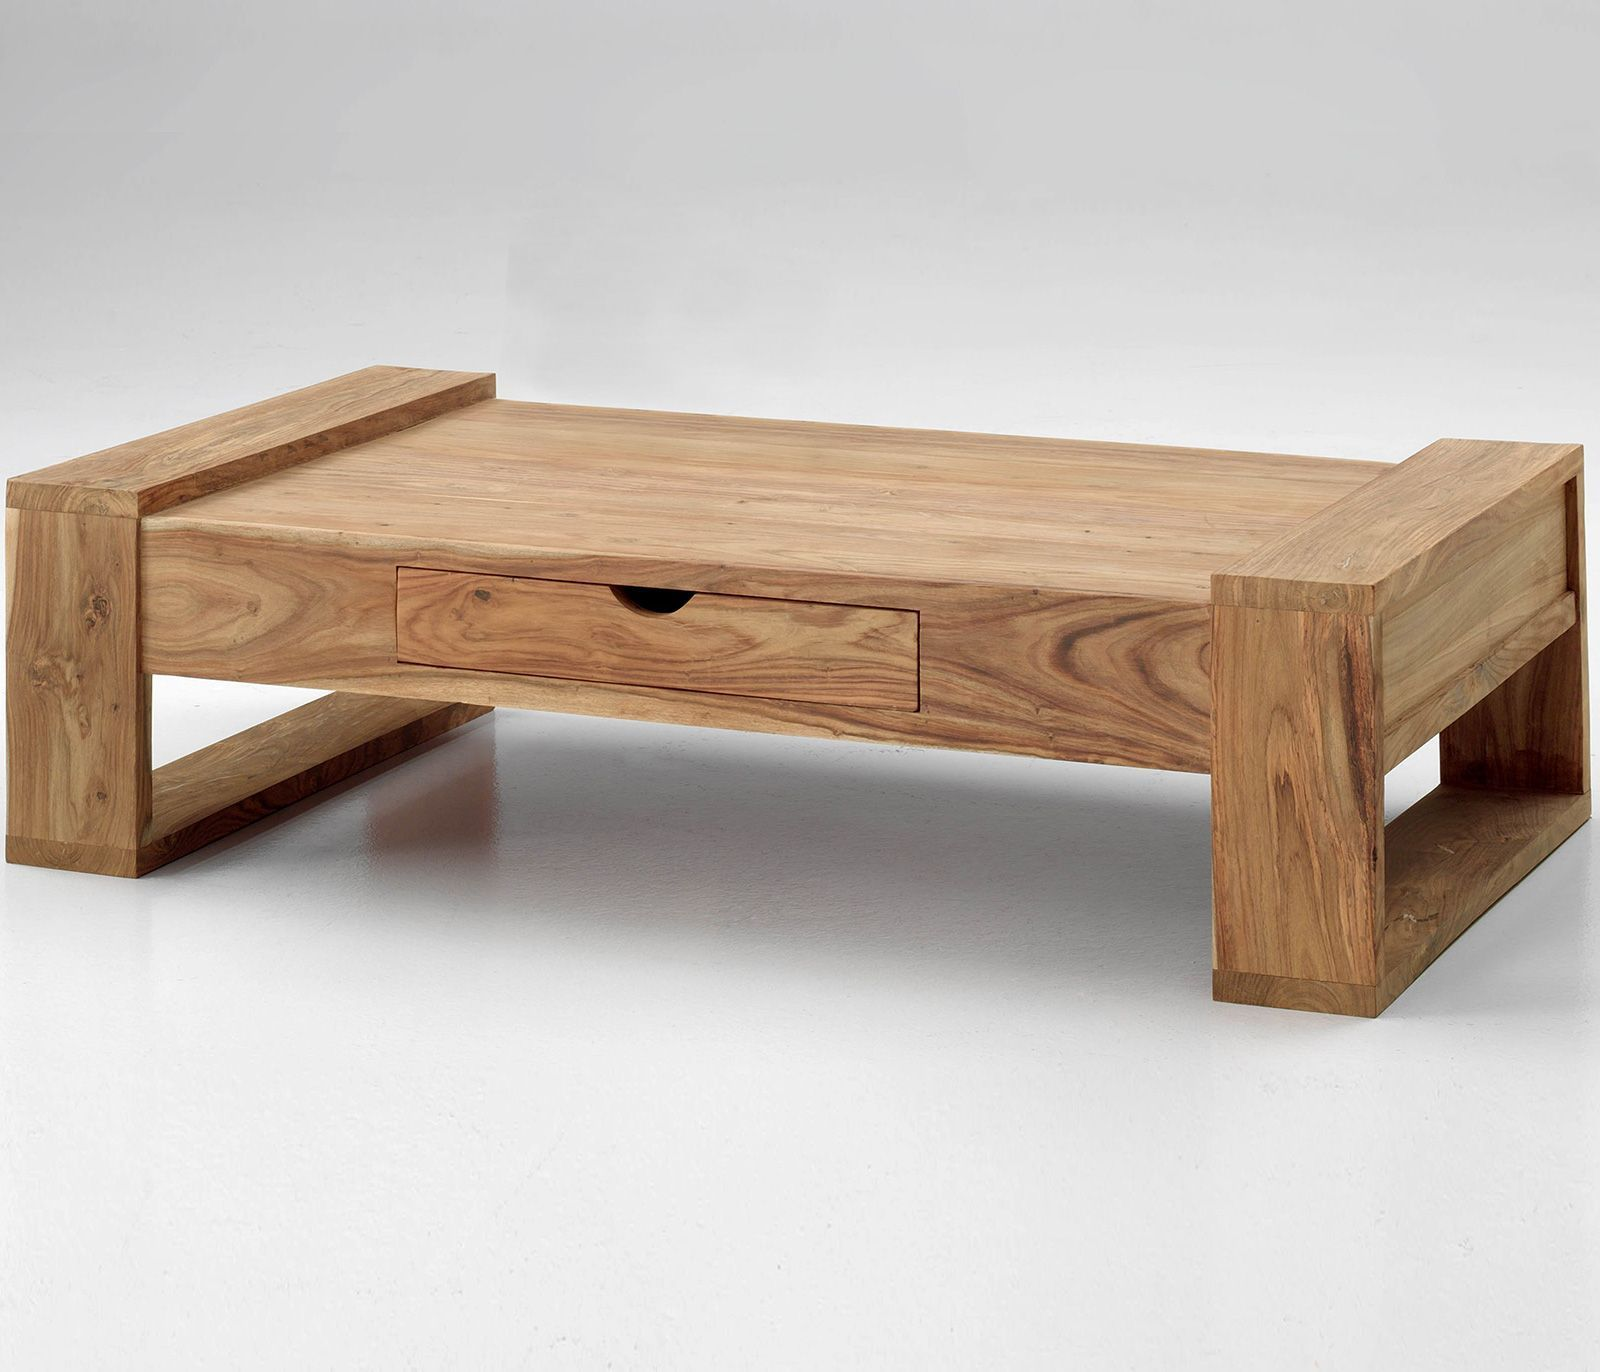 download wallpaper reclaimed wood coffee table x reclaimed